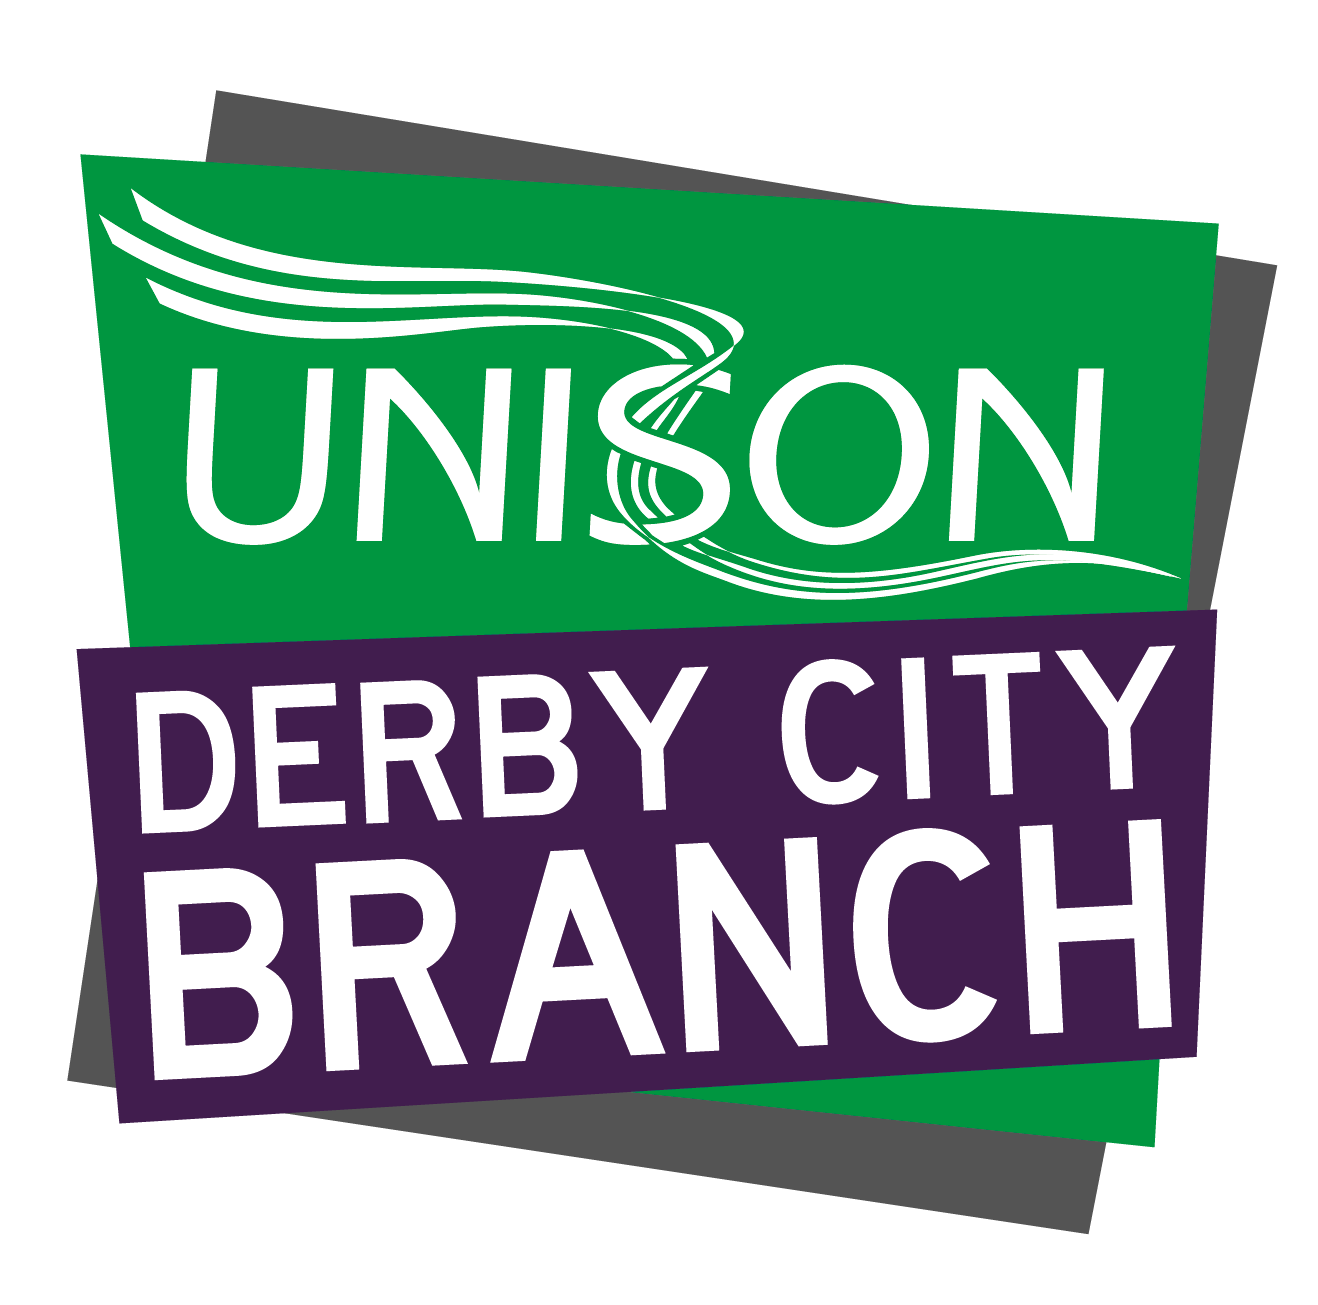 UNISON Derby City Branch